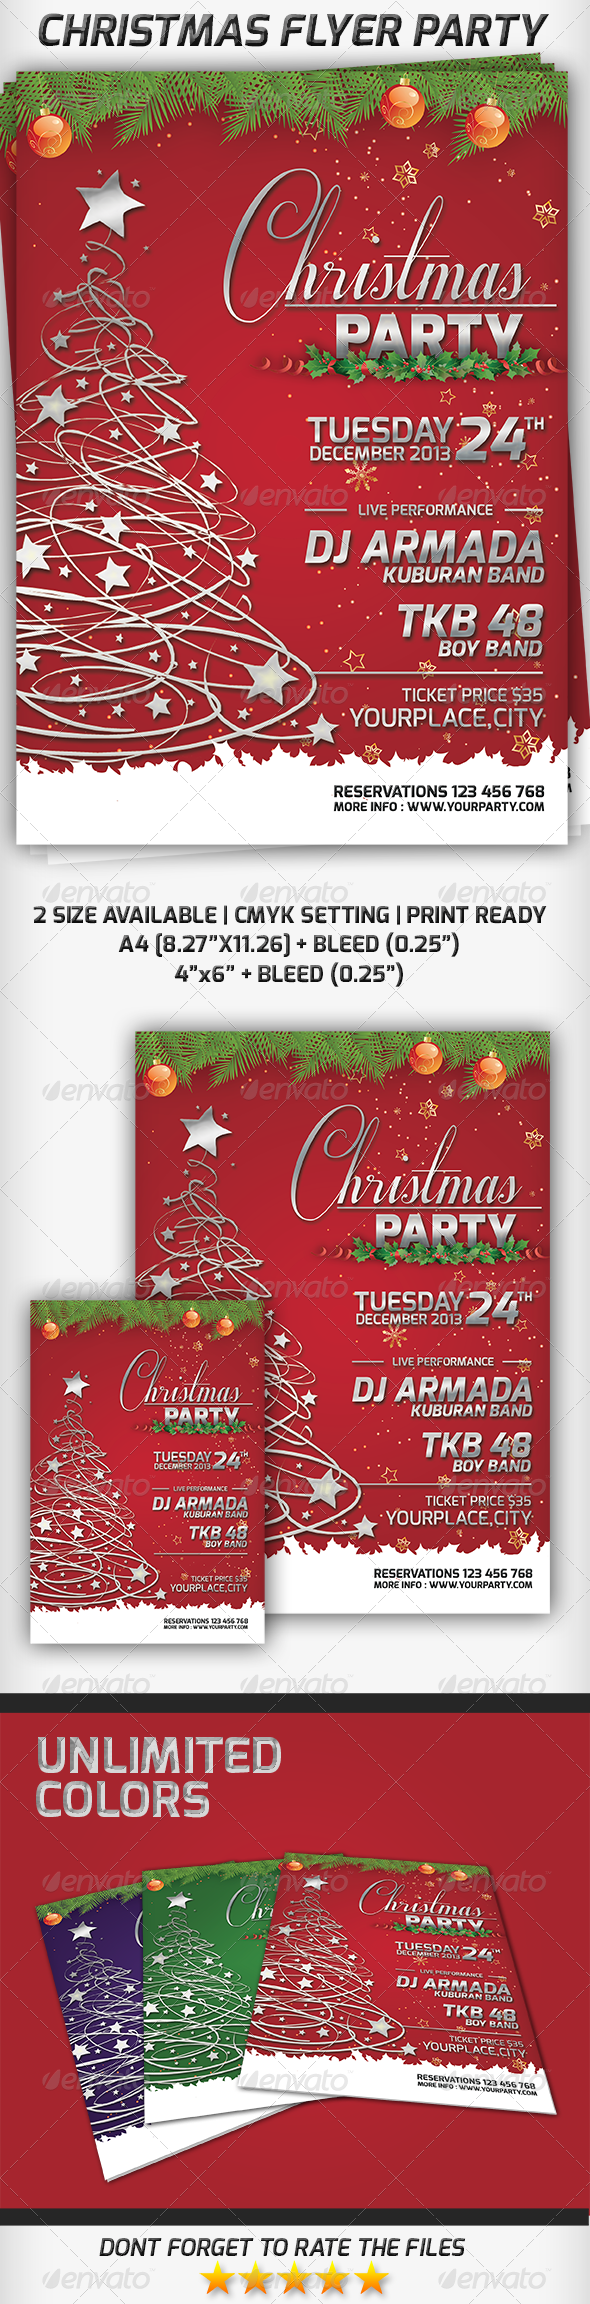 GraphicRiver Christmas Flyer Party 6292862